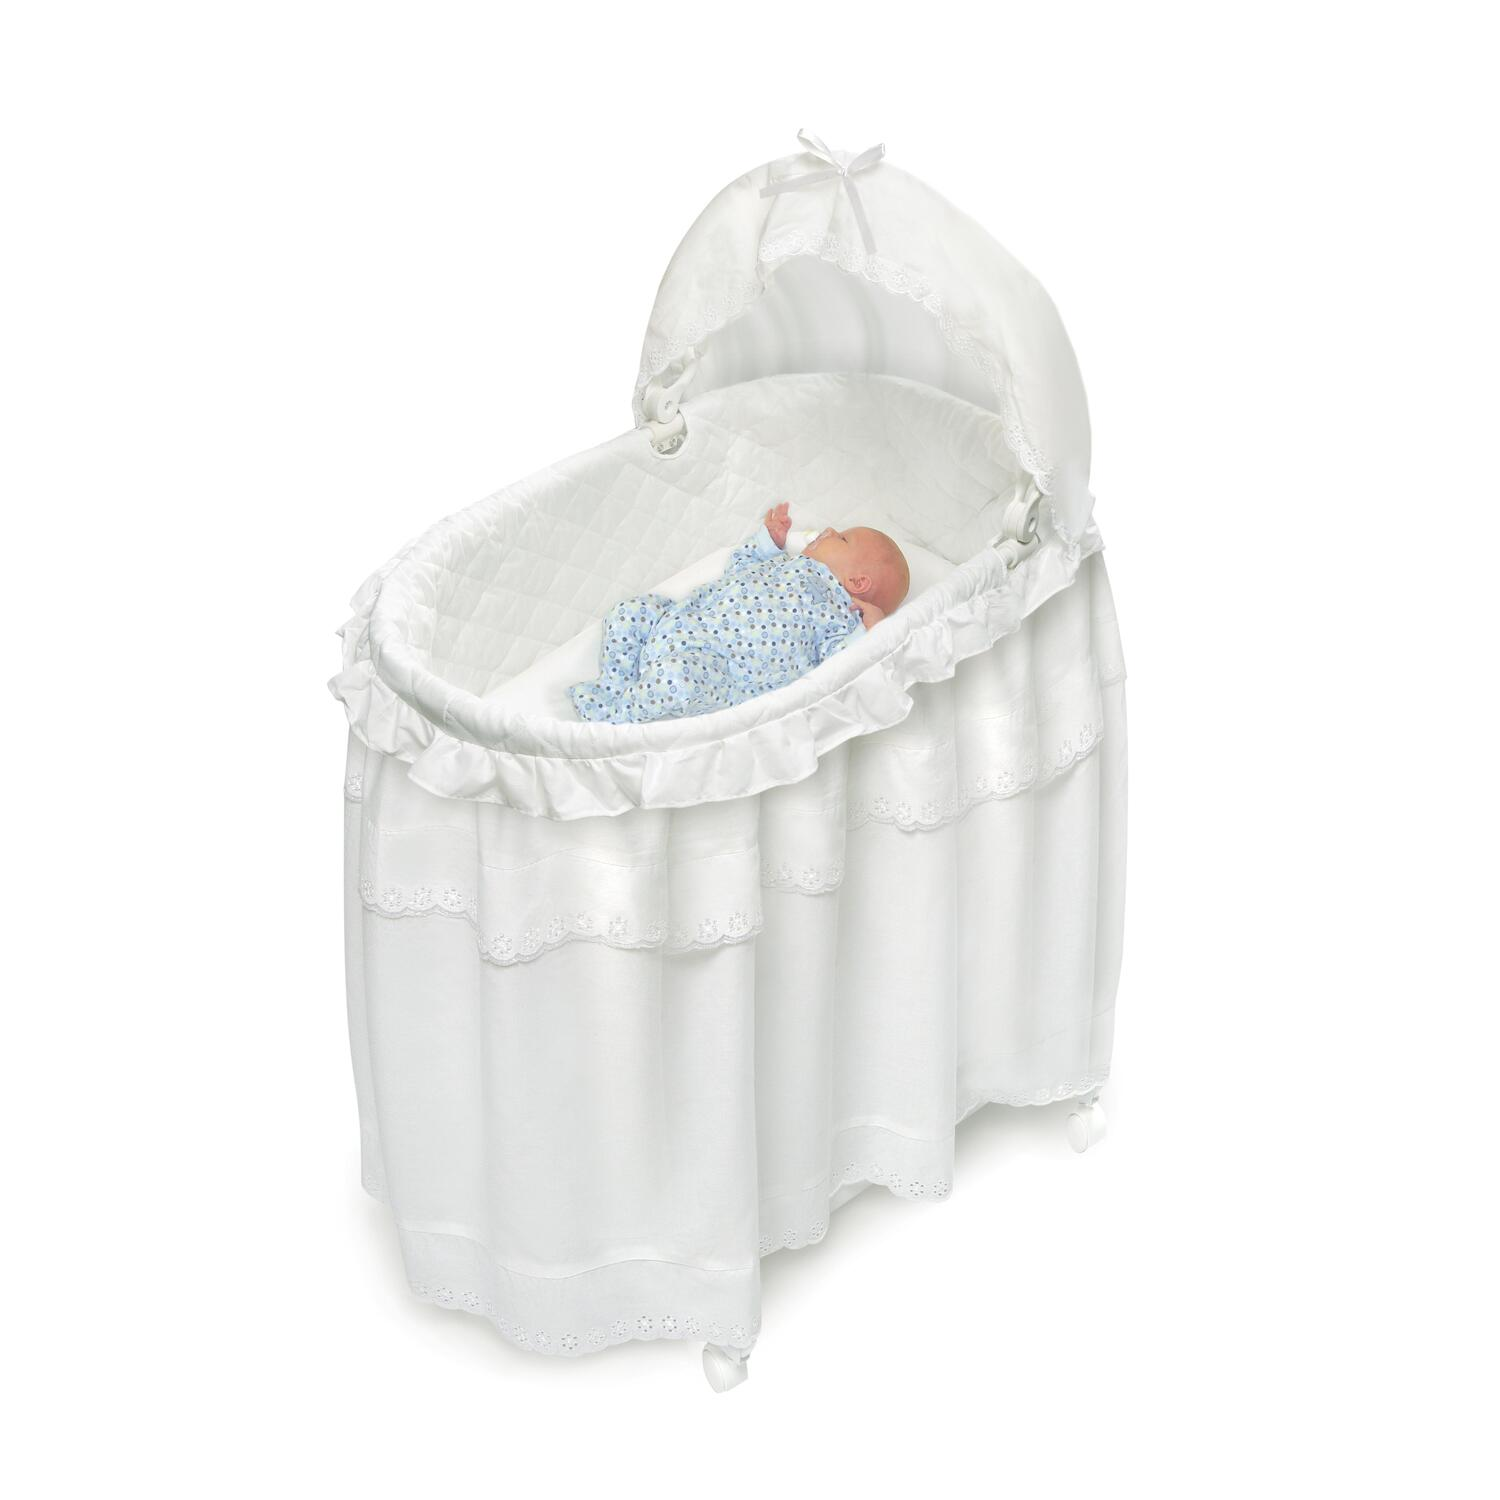 Baby Bassinet Cradle Badger Basket Portable Bassinet 39;n Cradle With Toybox Base